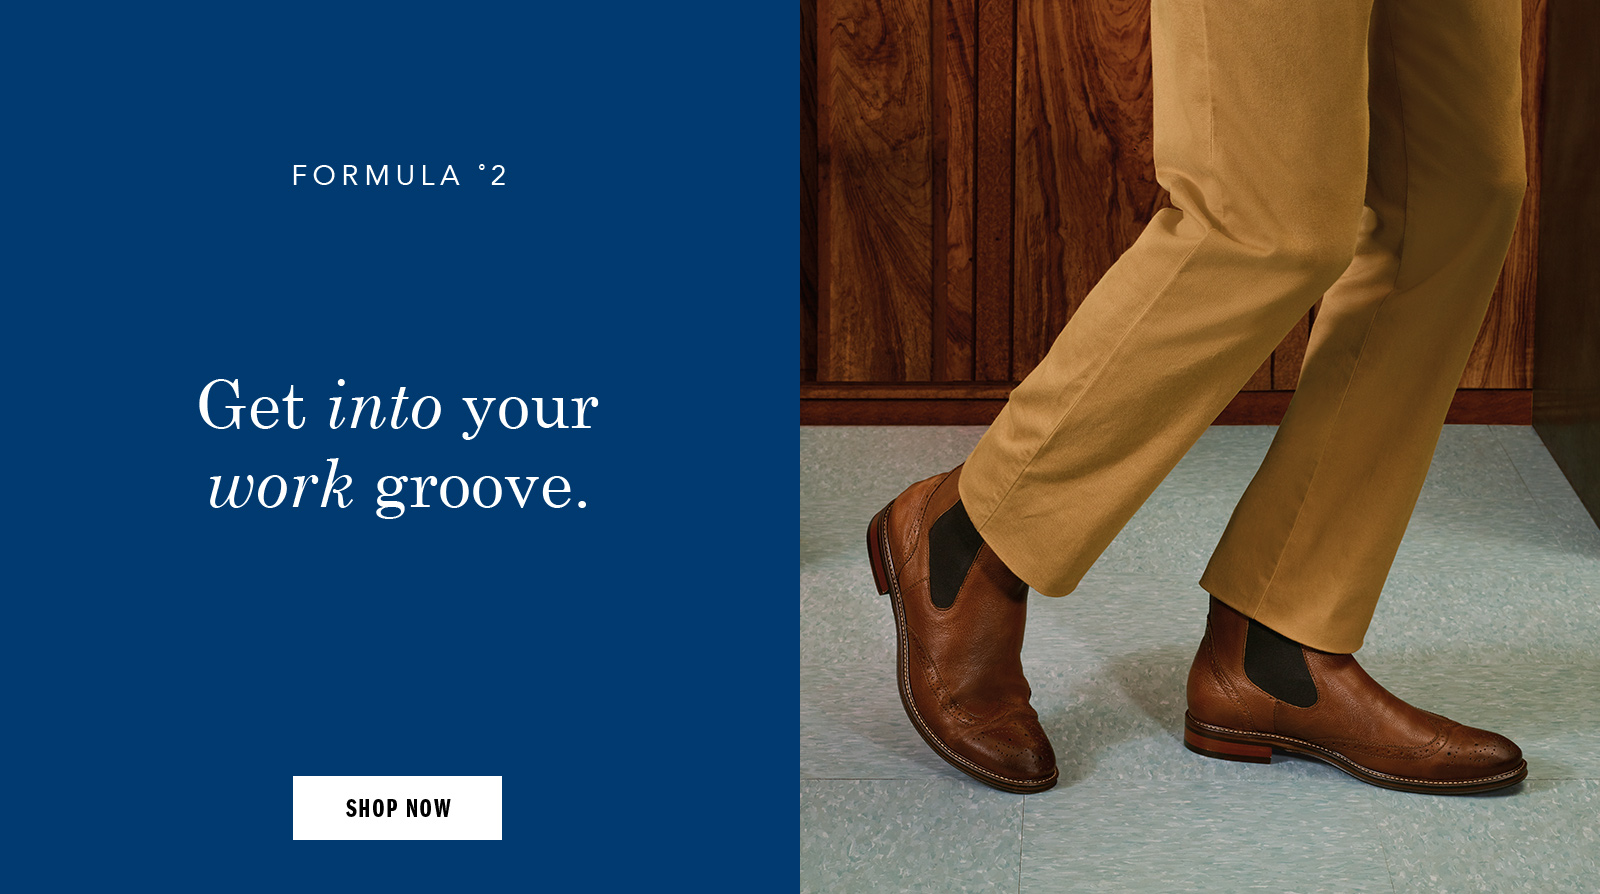 Get into your work groove - Shop Men's Boots